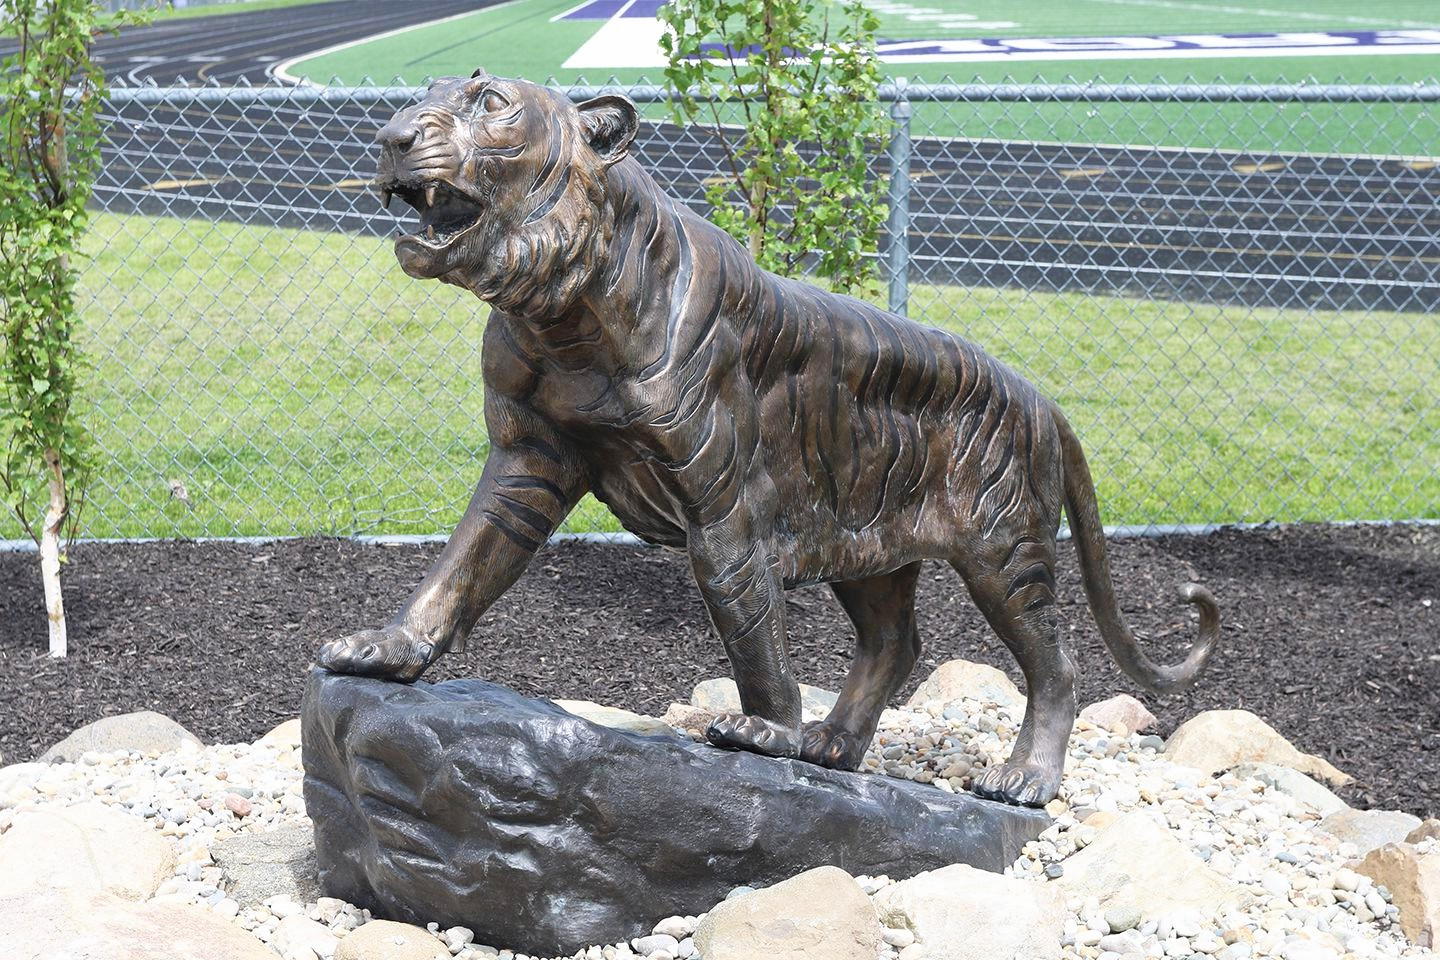 Feline animal design sculpture of tiger